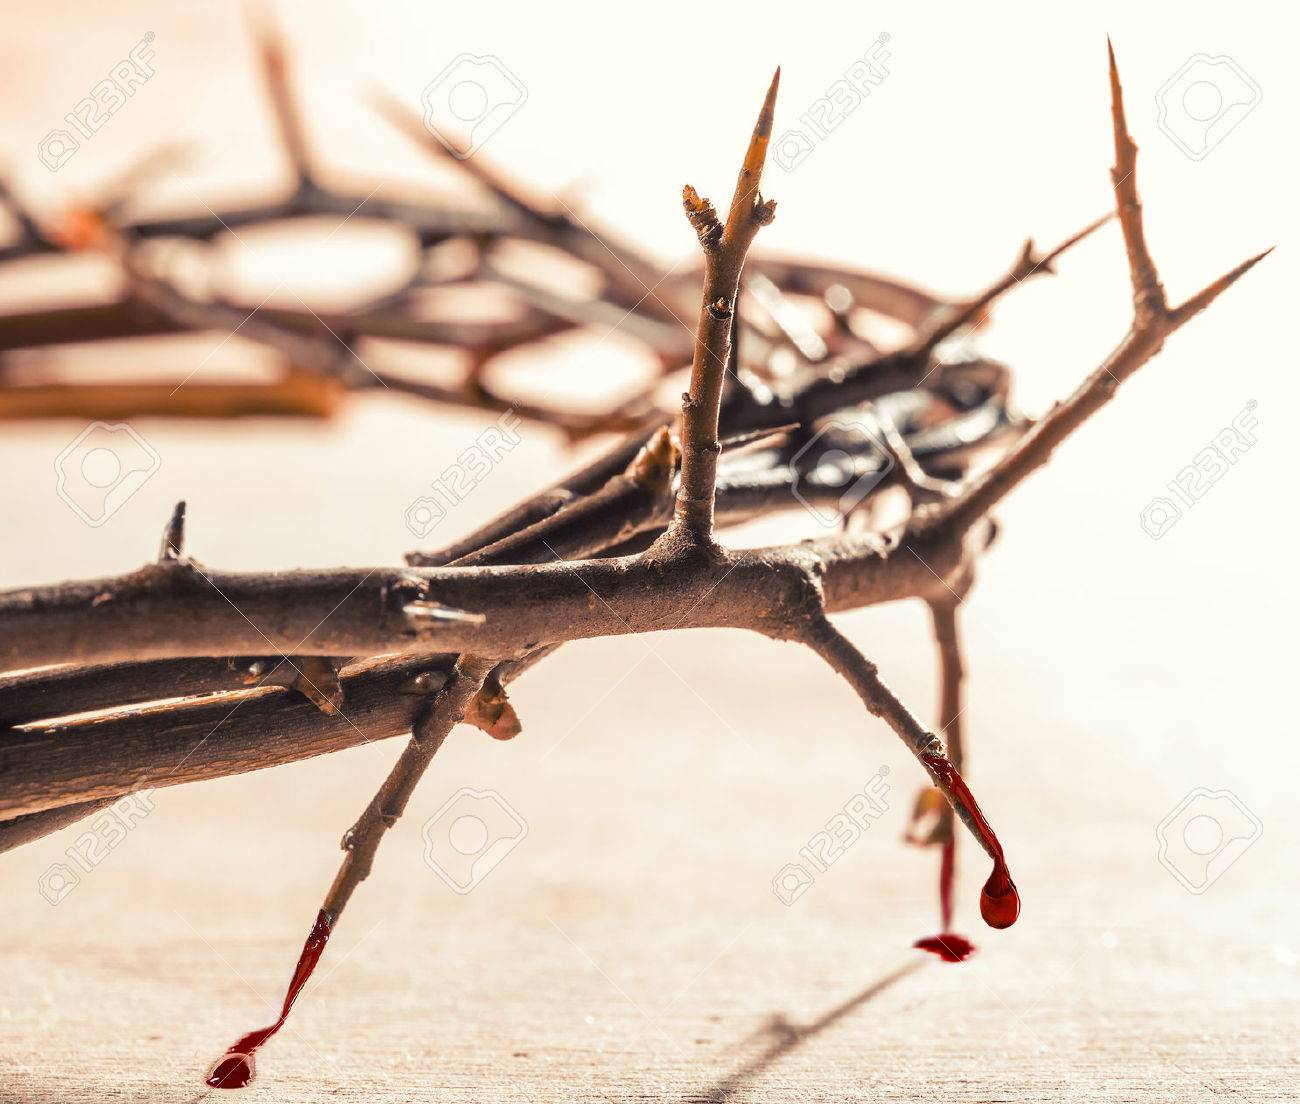 Homélie Audio: vous avez 10 minutes ?  - Page 11 53470705-crown-of-thorns-with-blood-dripping-christian-concept-of-suffering-